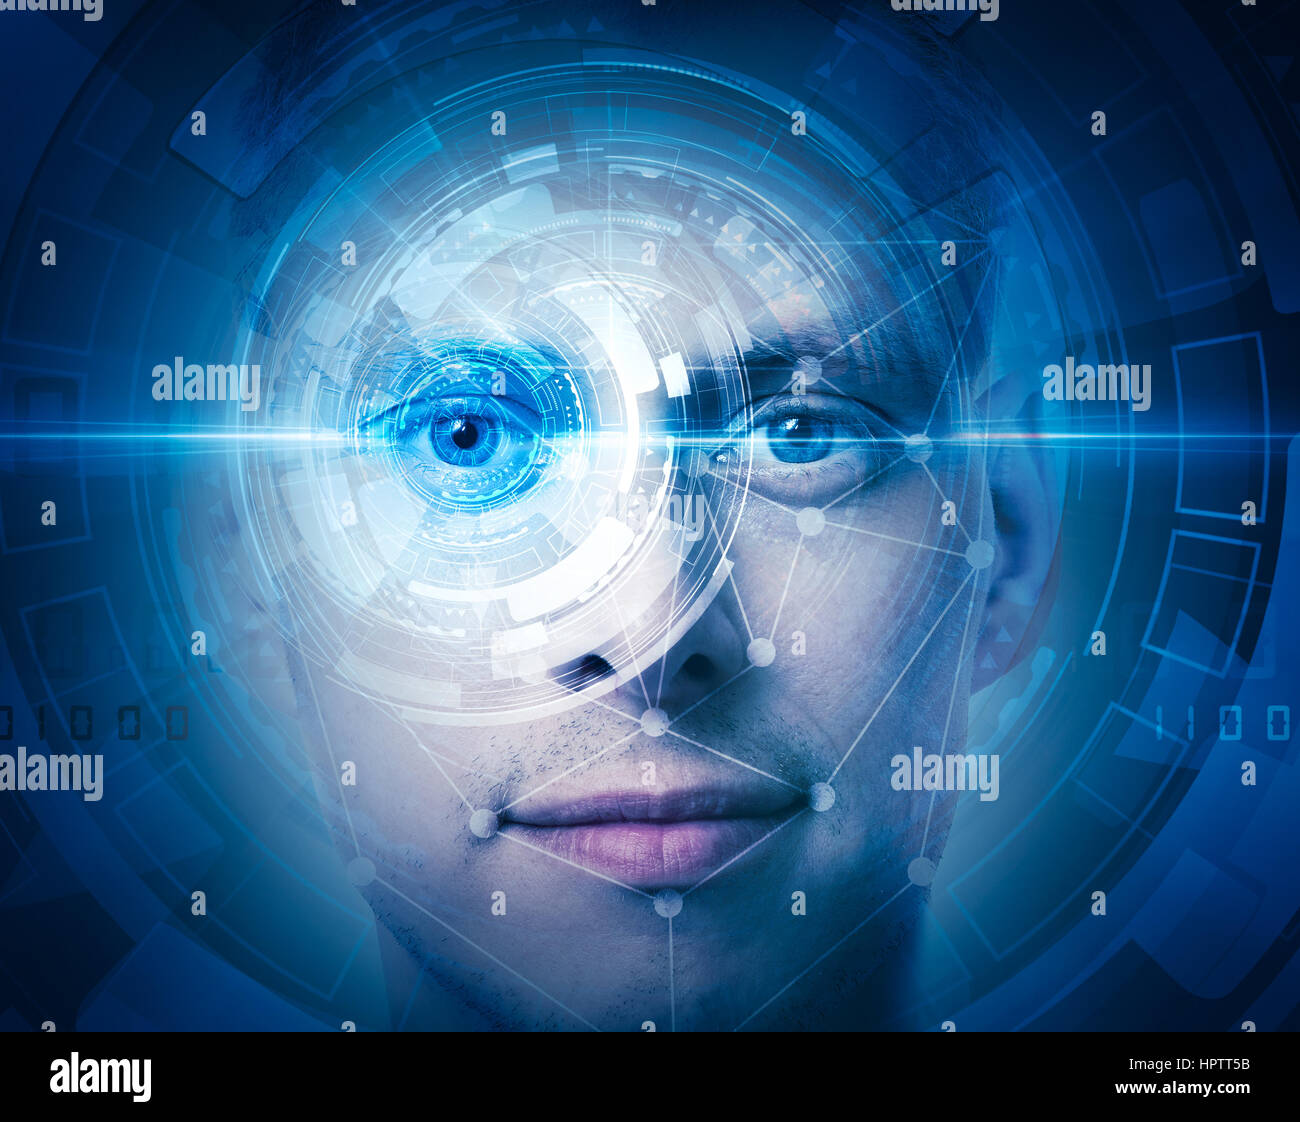 high tech face scan - Stock Image